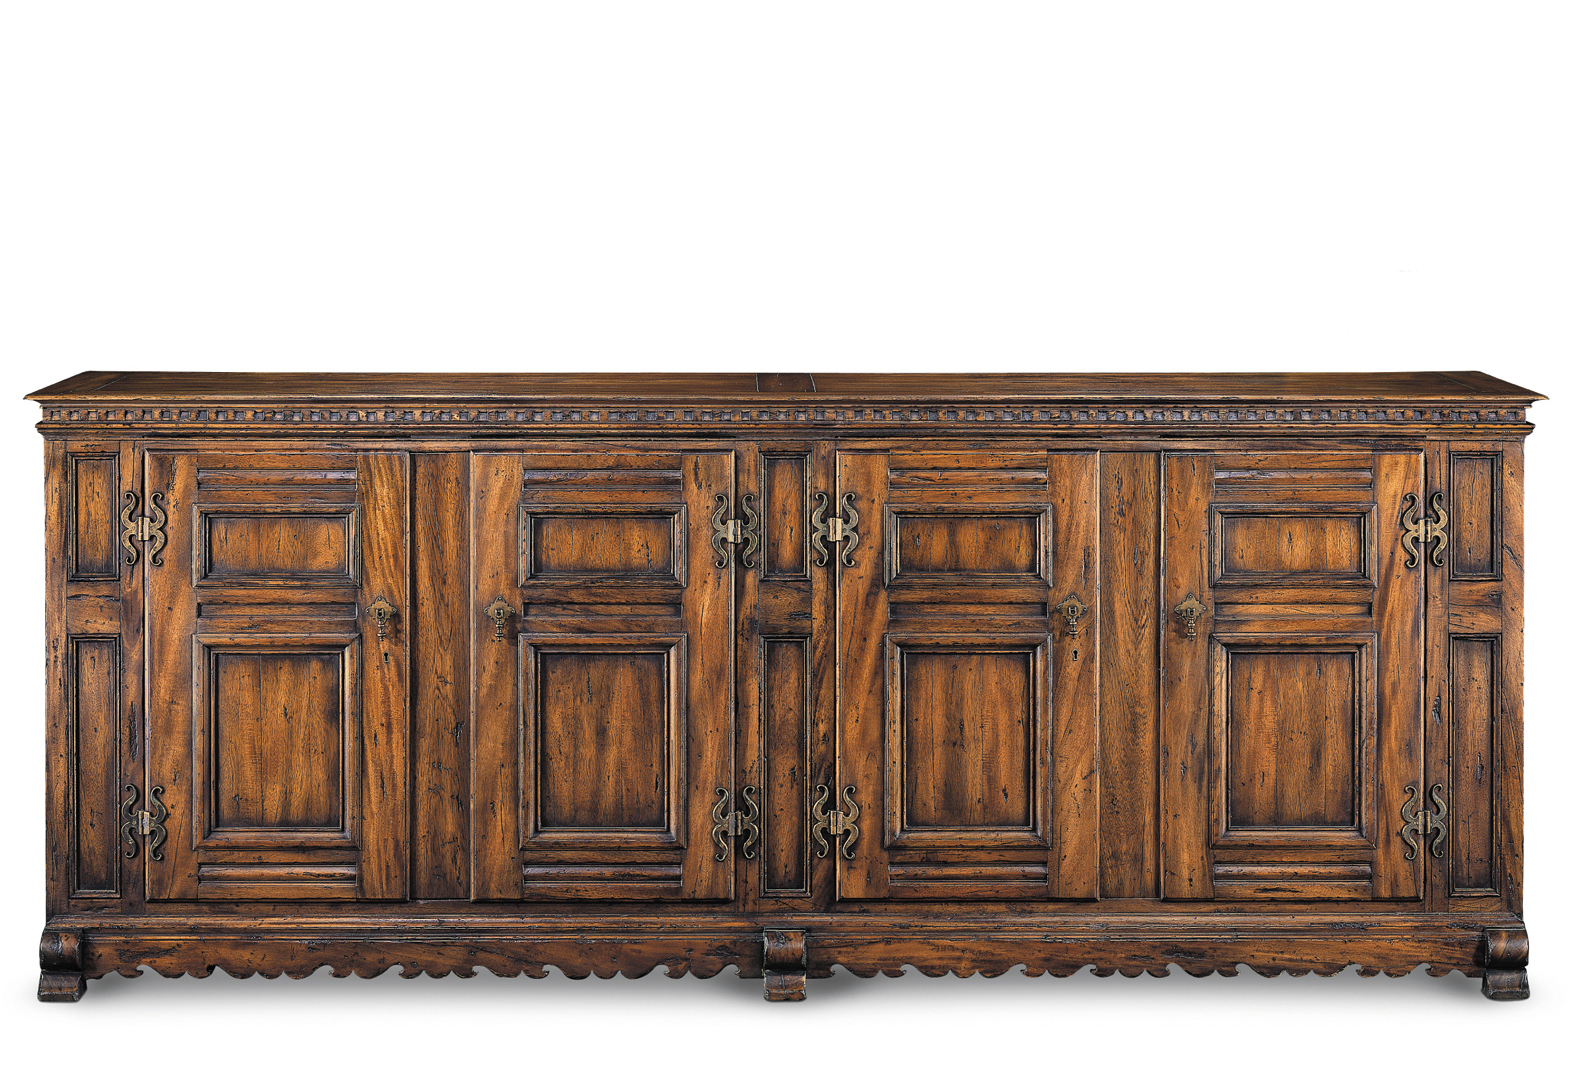 XVII TH CENTURY II BUFFET WITH 4 DOORS